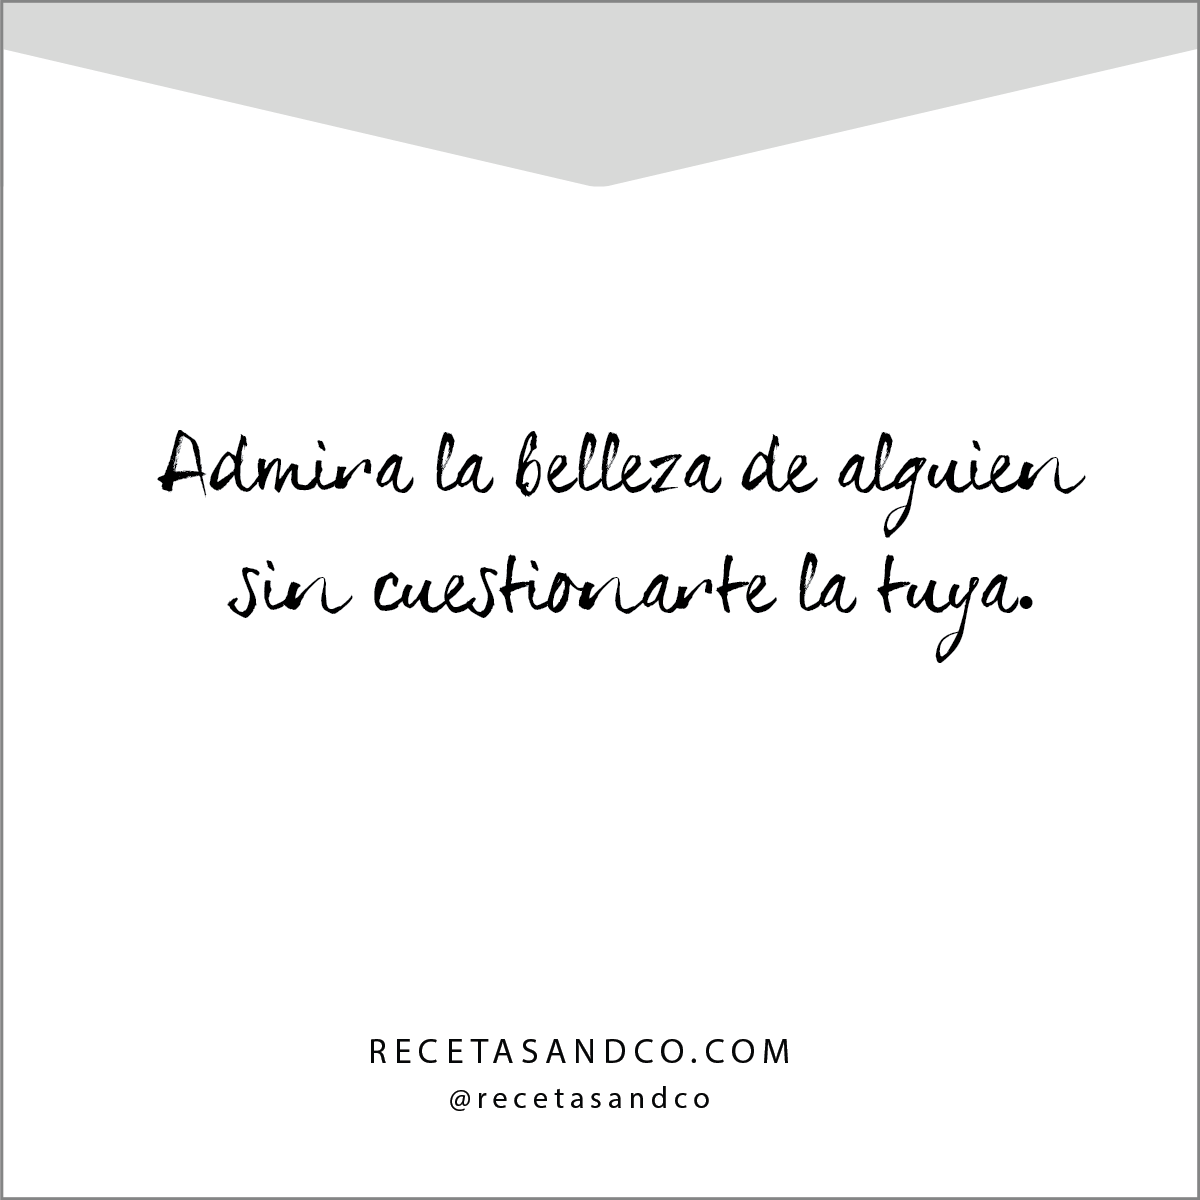 Recetasandco Quote Insporationquotes Frases Frasesmotivadoras  # Muebles Joaquin Espinosa